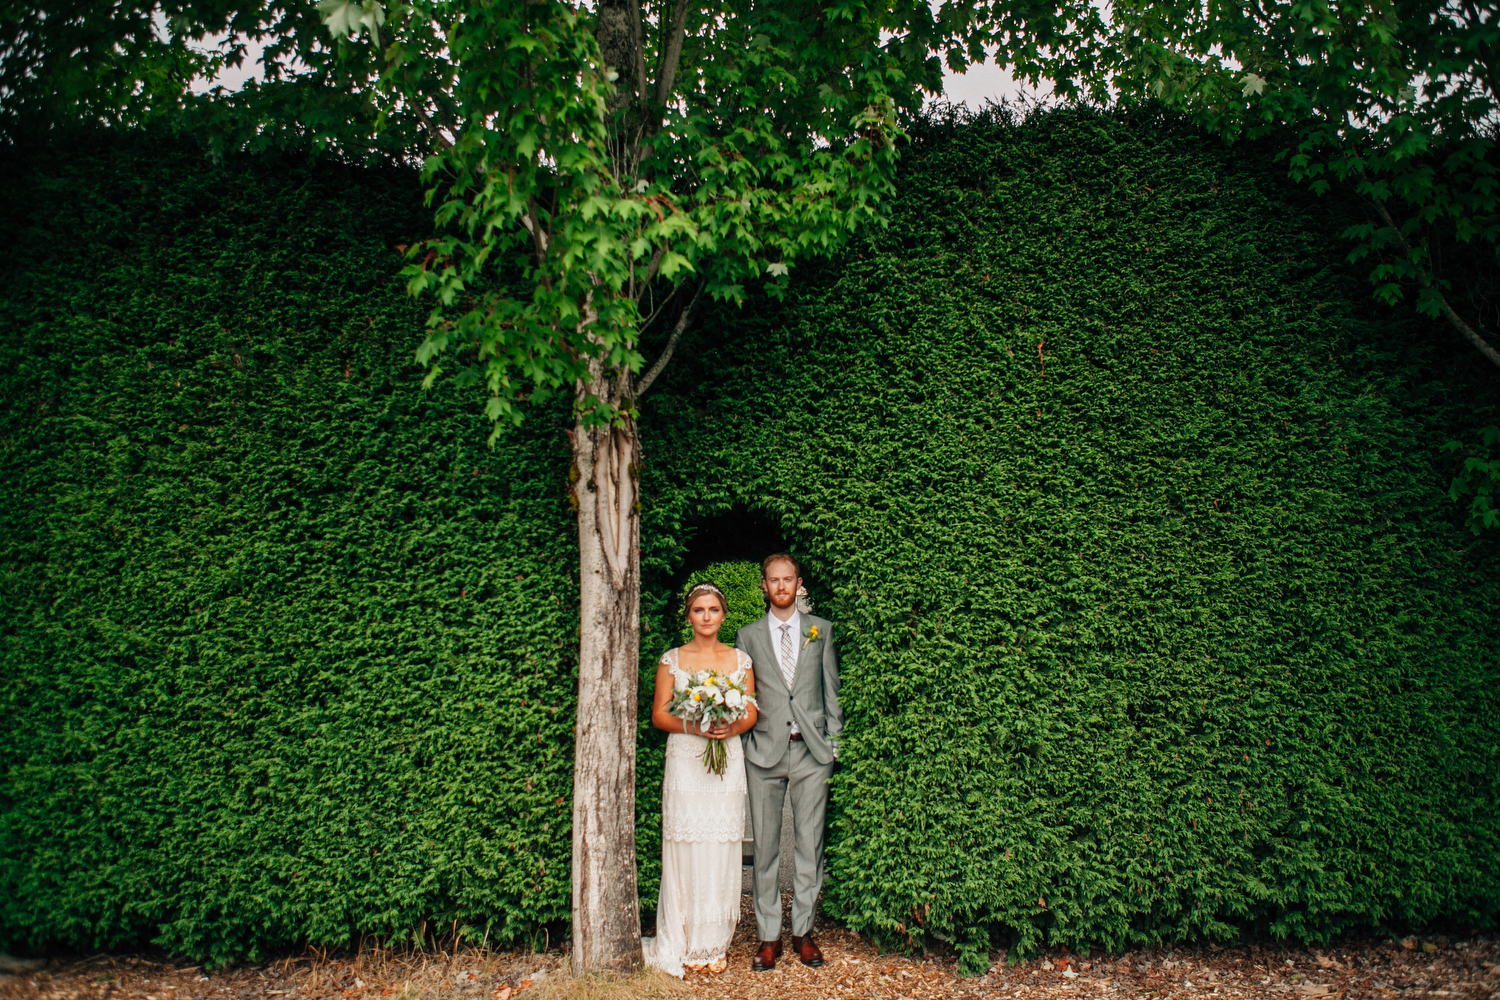 Intimate Woodinville Winery Wedding - Candice Luth Wedding & Event Design